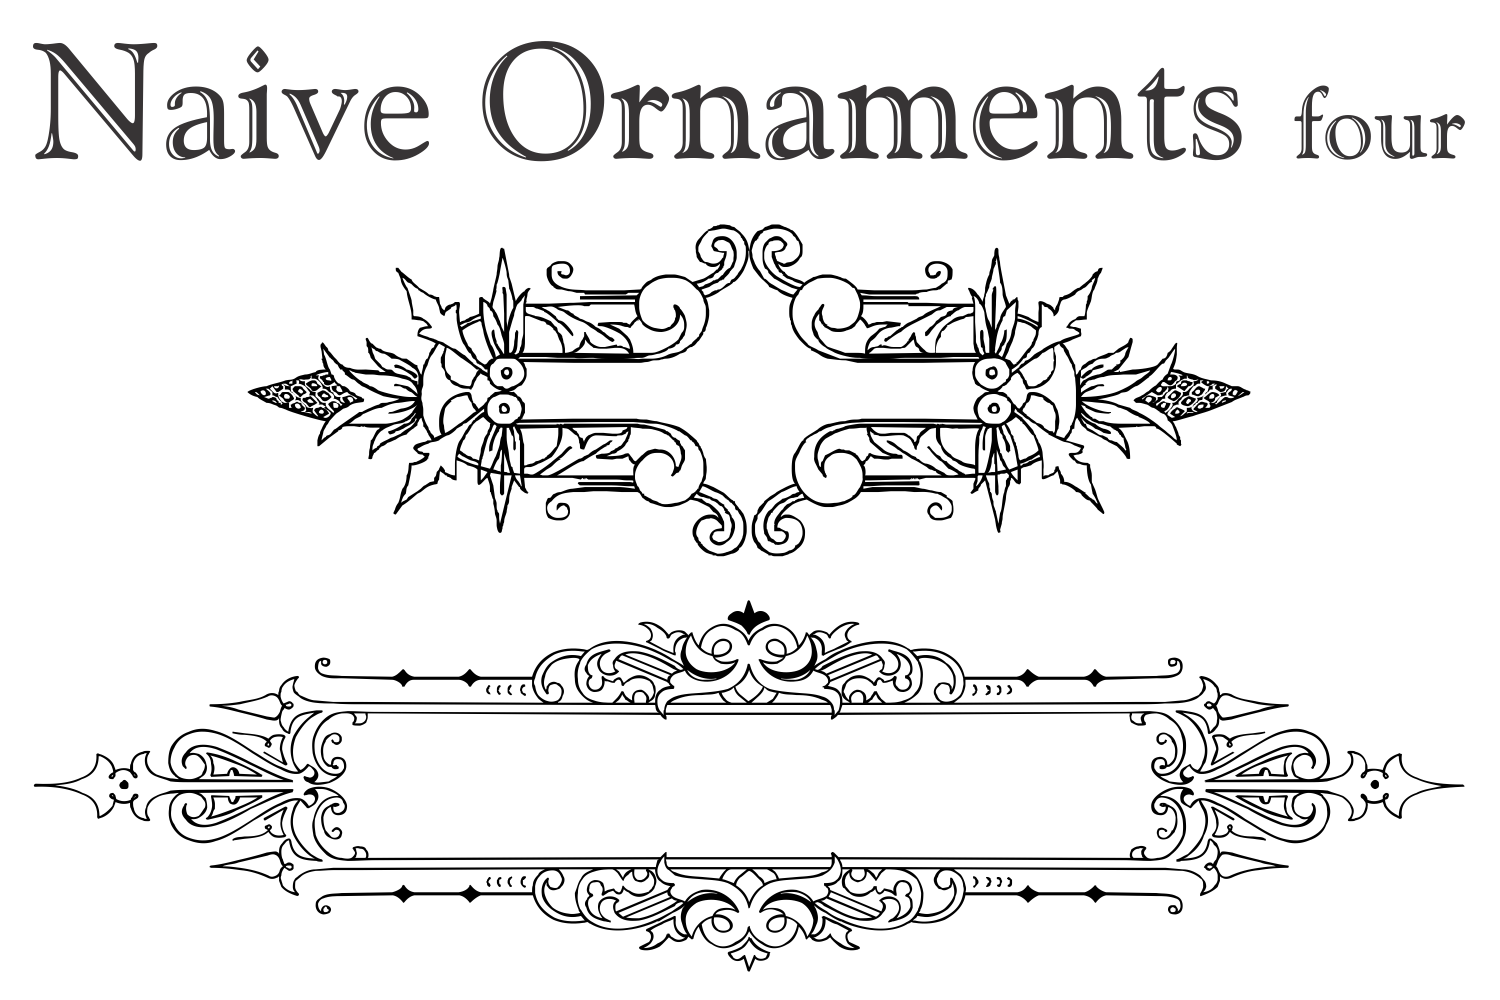 Naive Ornaments Four example image 2